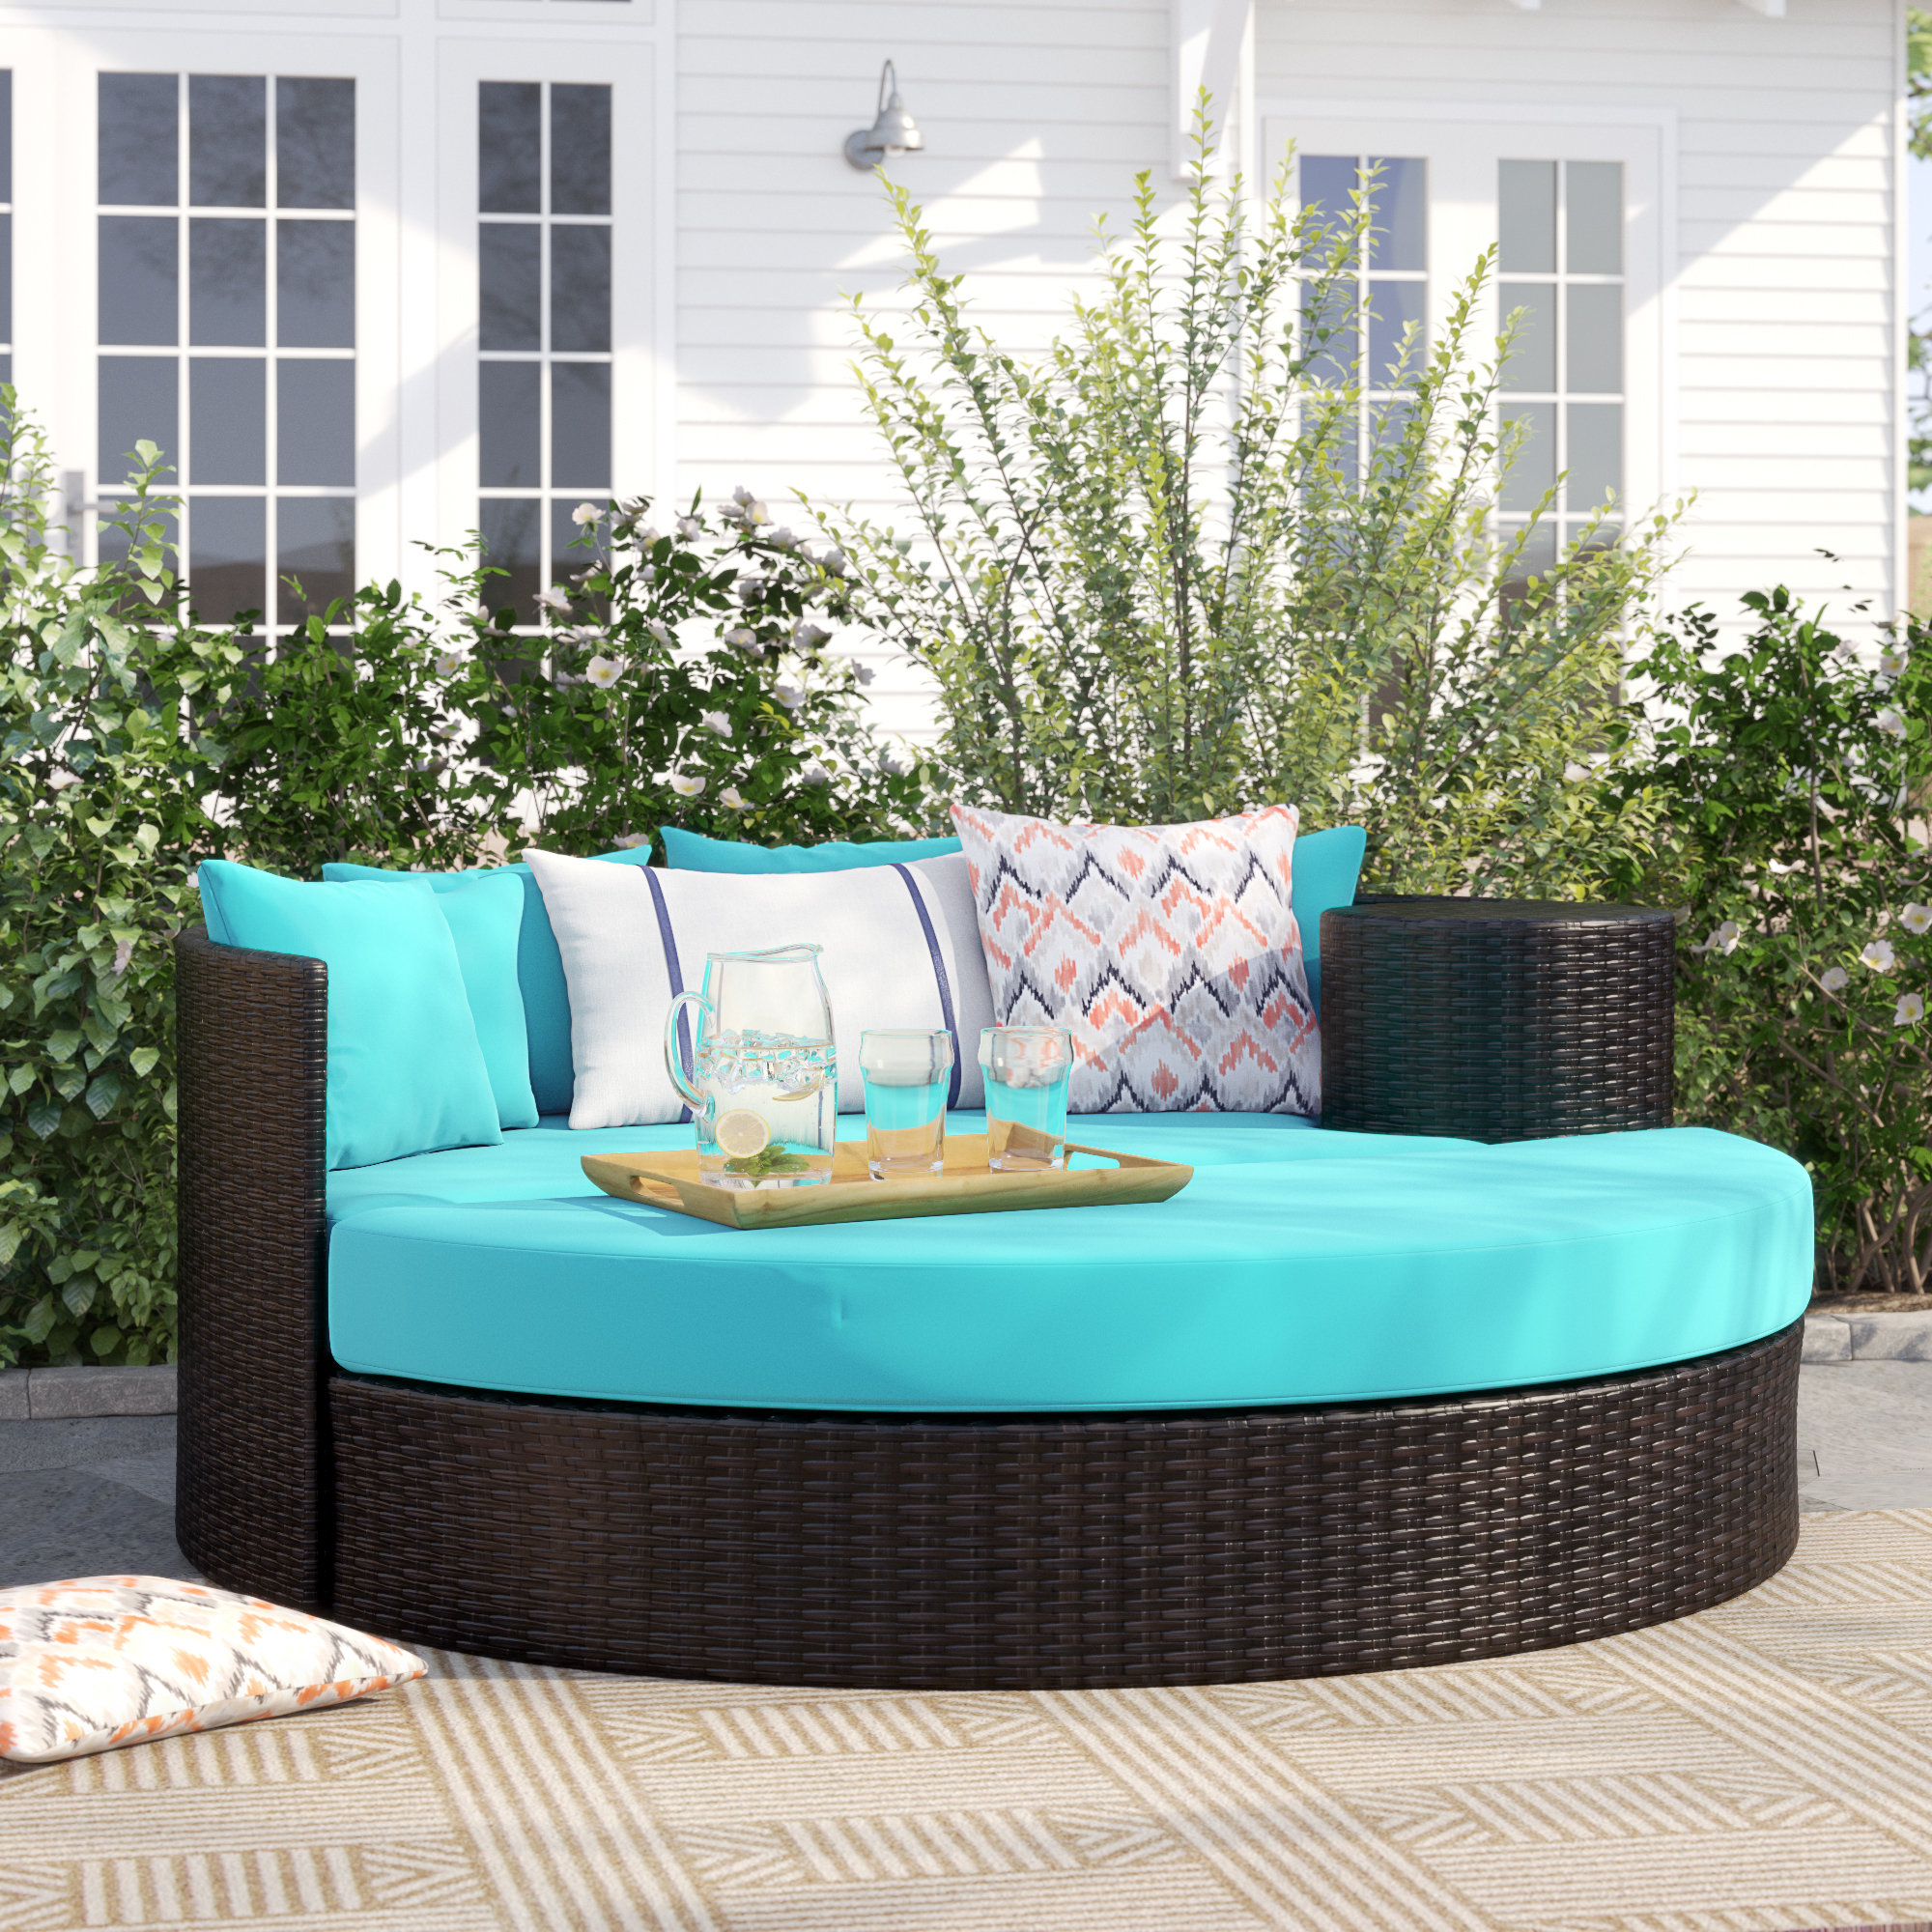 Lavina Outdoor Patio Daybeds With Cushions Within Recent Sol 72 Outdoor Freeport Patio Daybed With Cushion & Reviews (View 11 of 20)